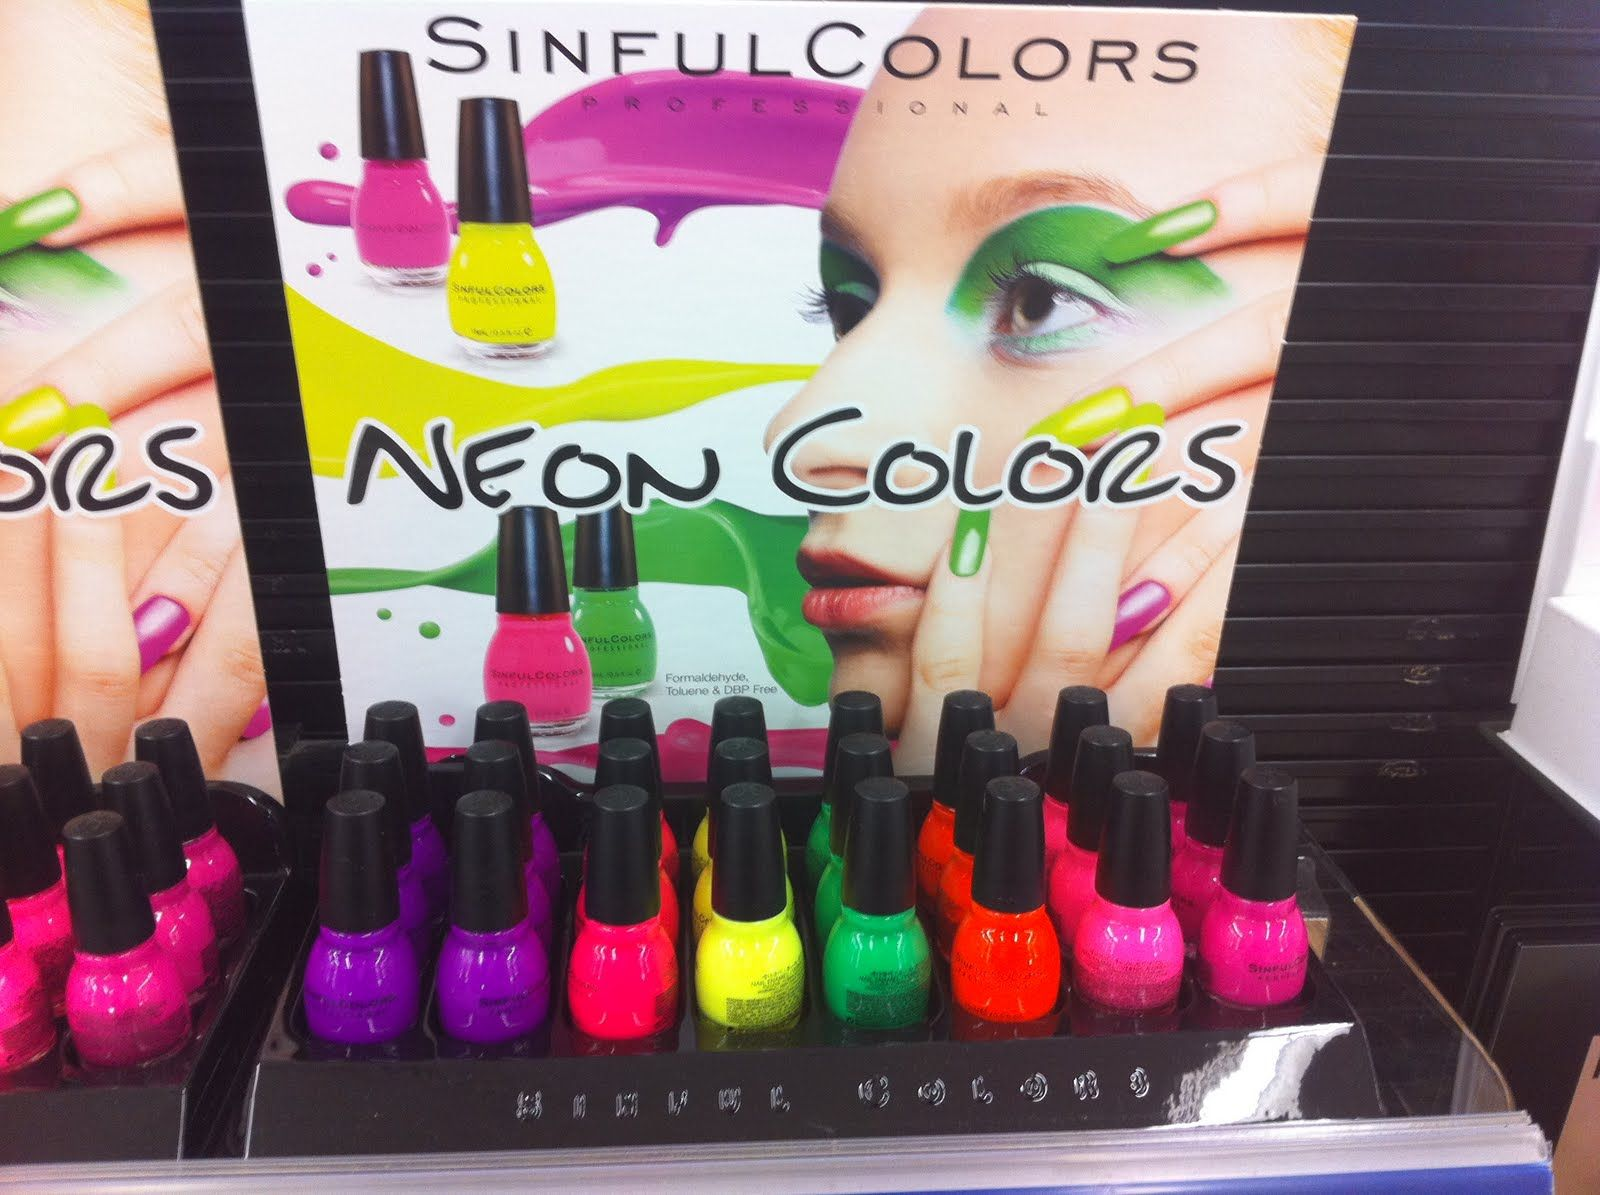 Bright Neon Colors   Sinful Colors Neon Colors Nail Polish   In ...